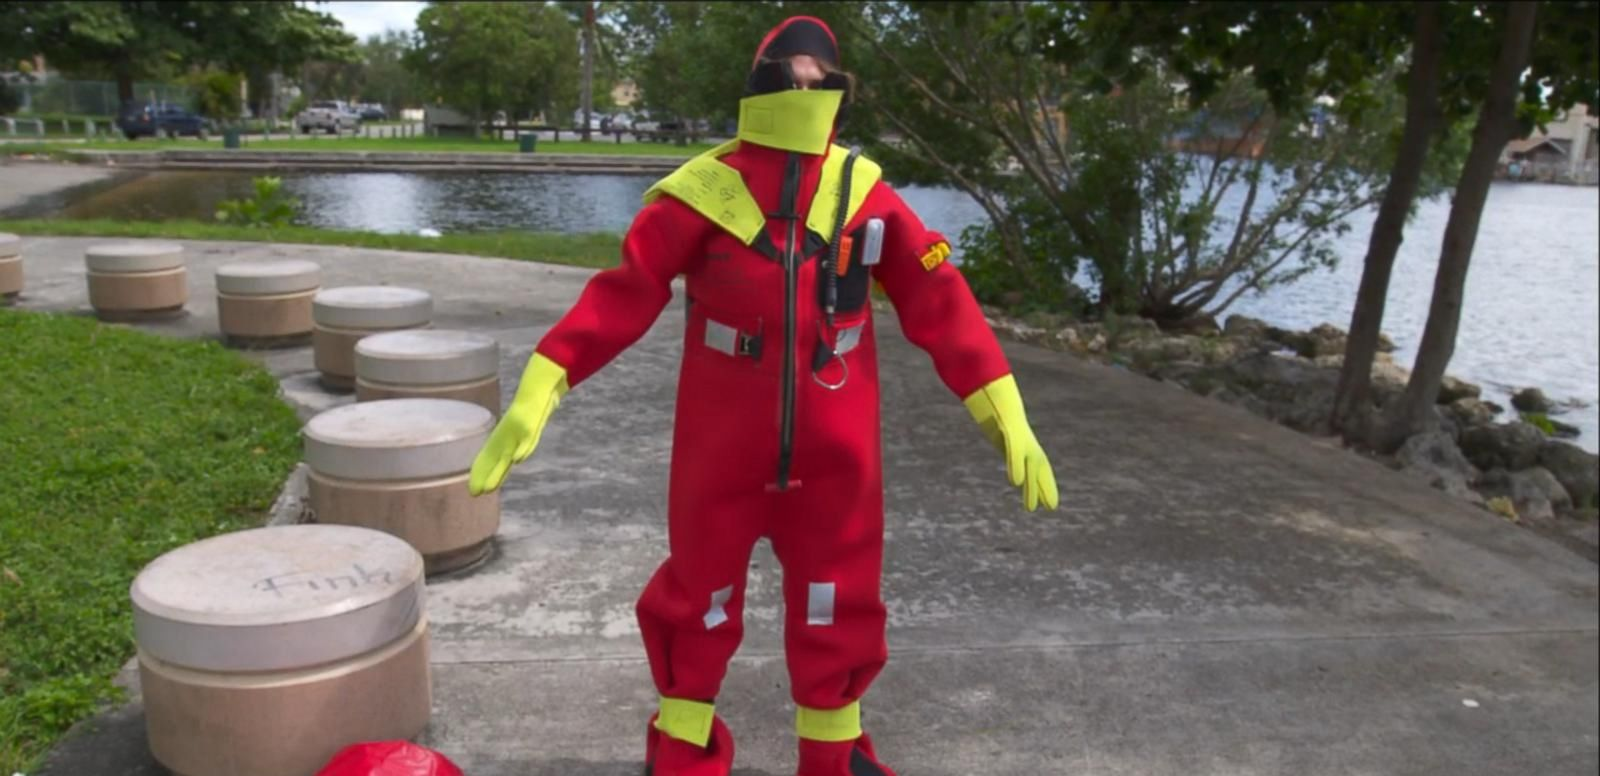 VIDEO: Patrick Brunosson of Datrex, Inc. demonstrates how immersion suits like those worn by the crew of the sunken container ship can help save lives.